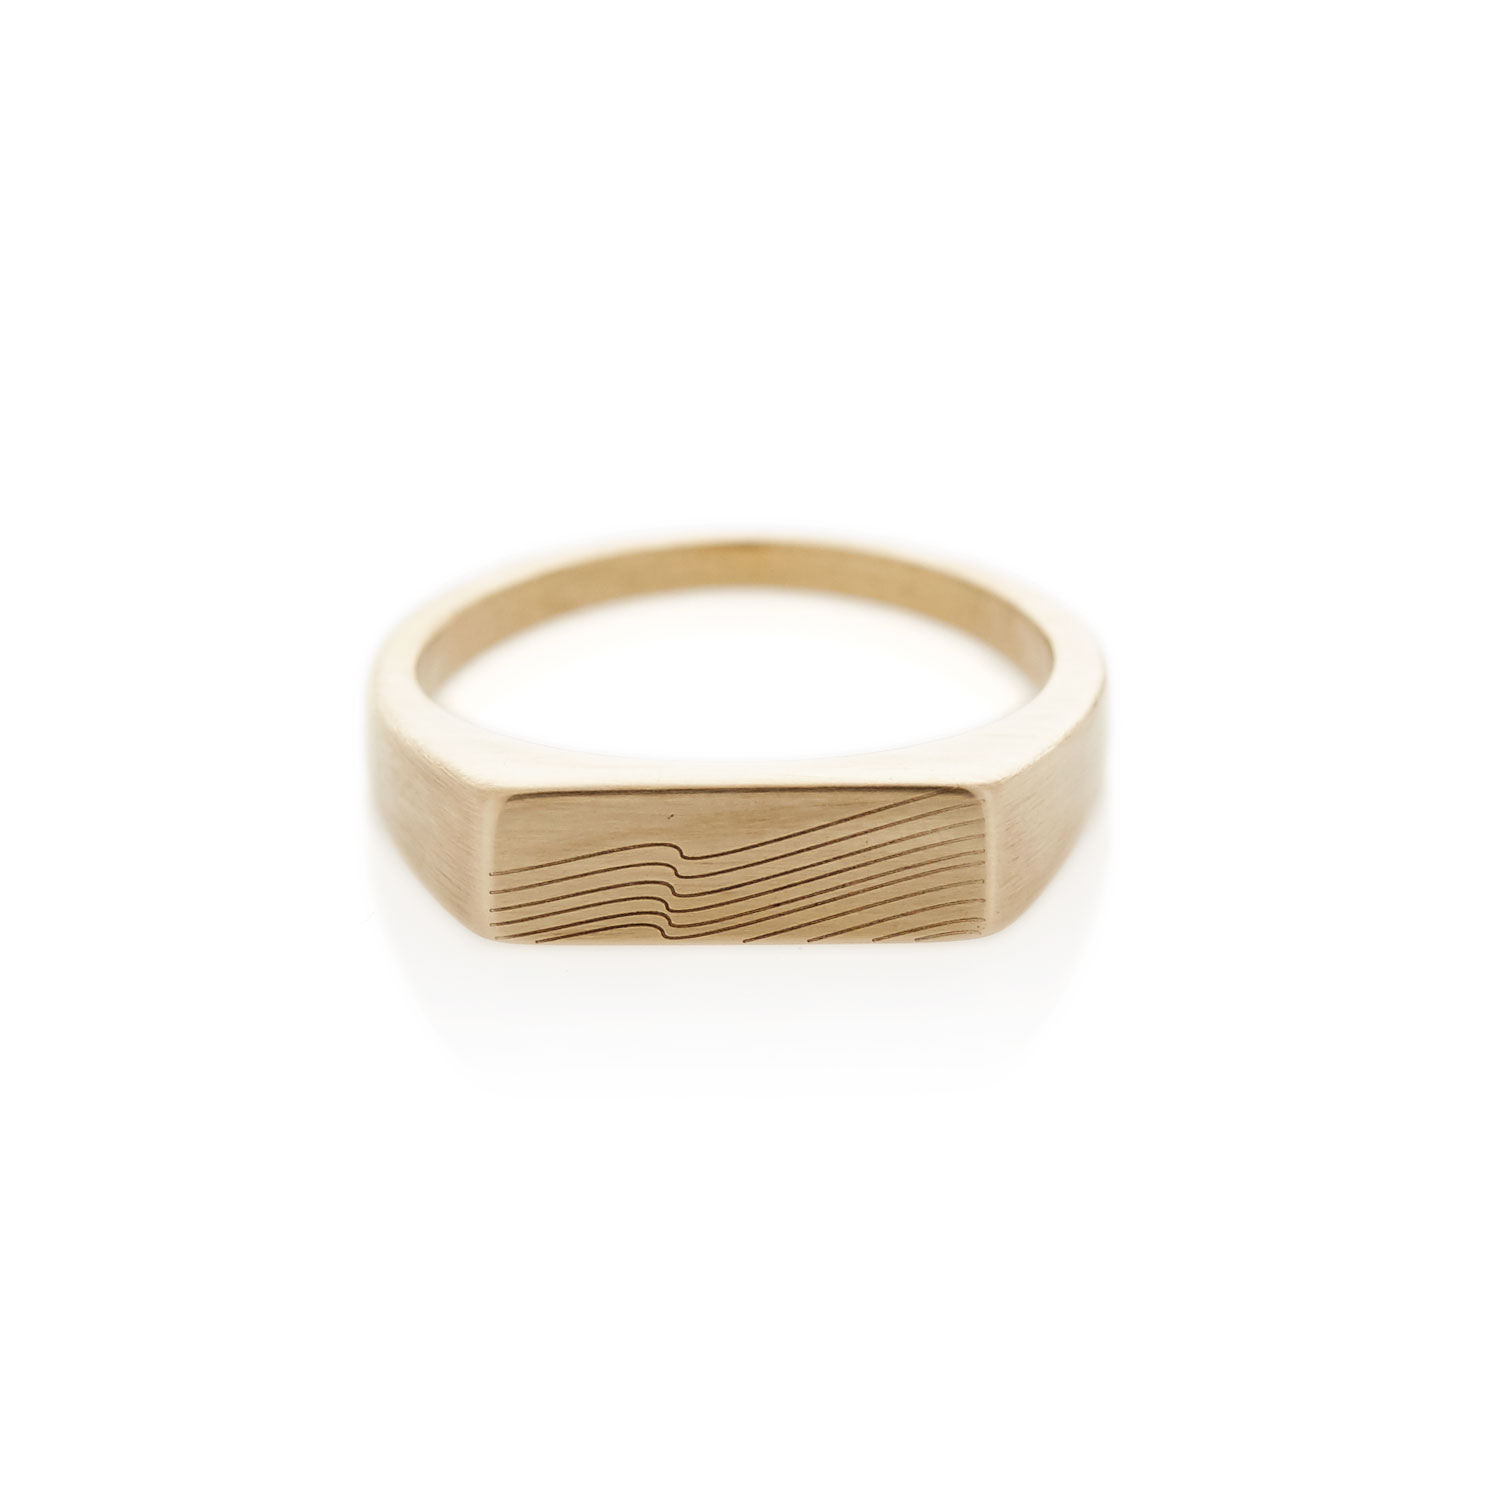 Summit yellow gold rectangle signet ring